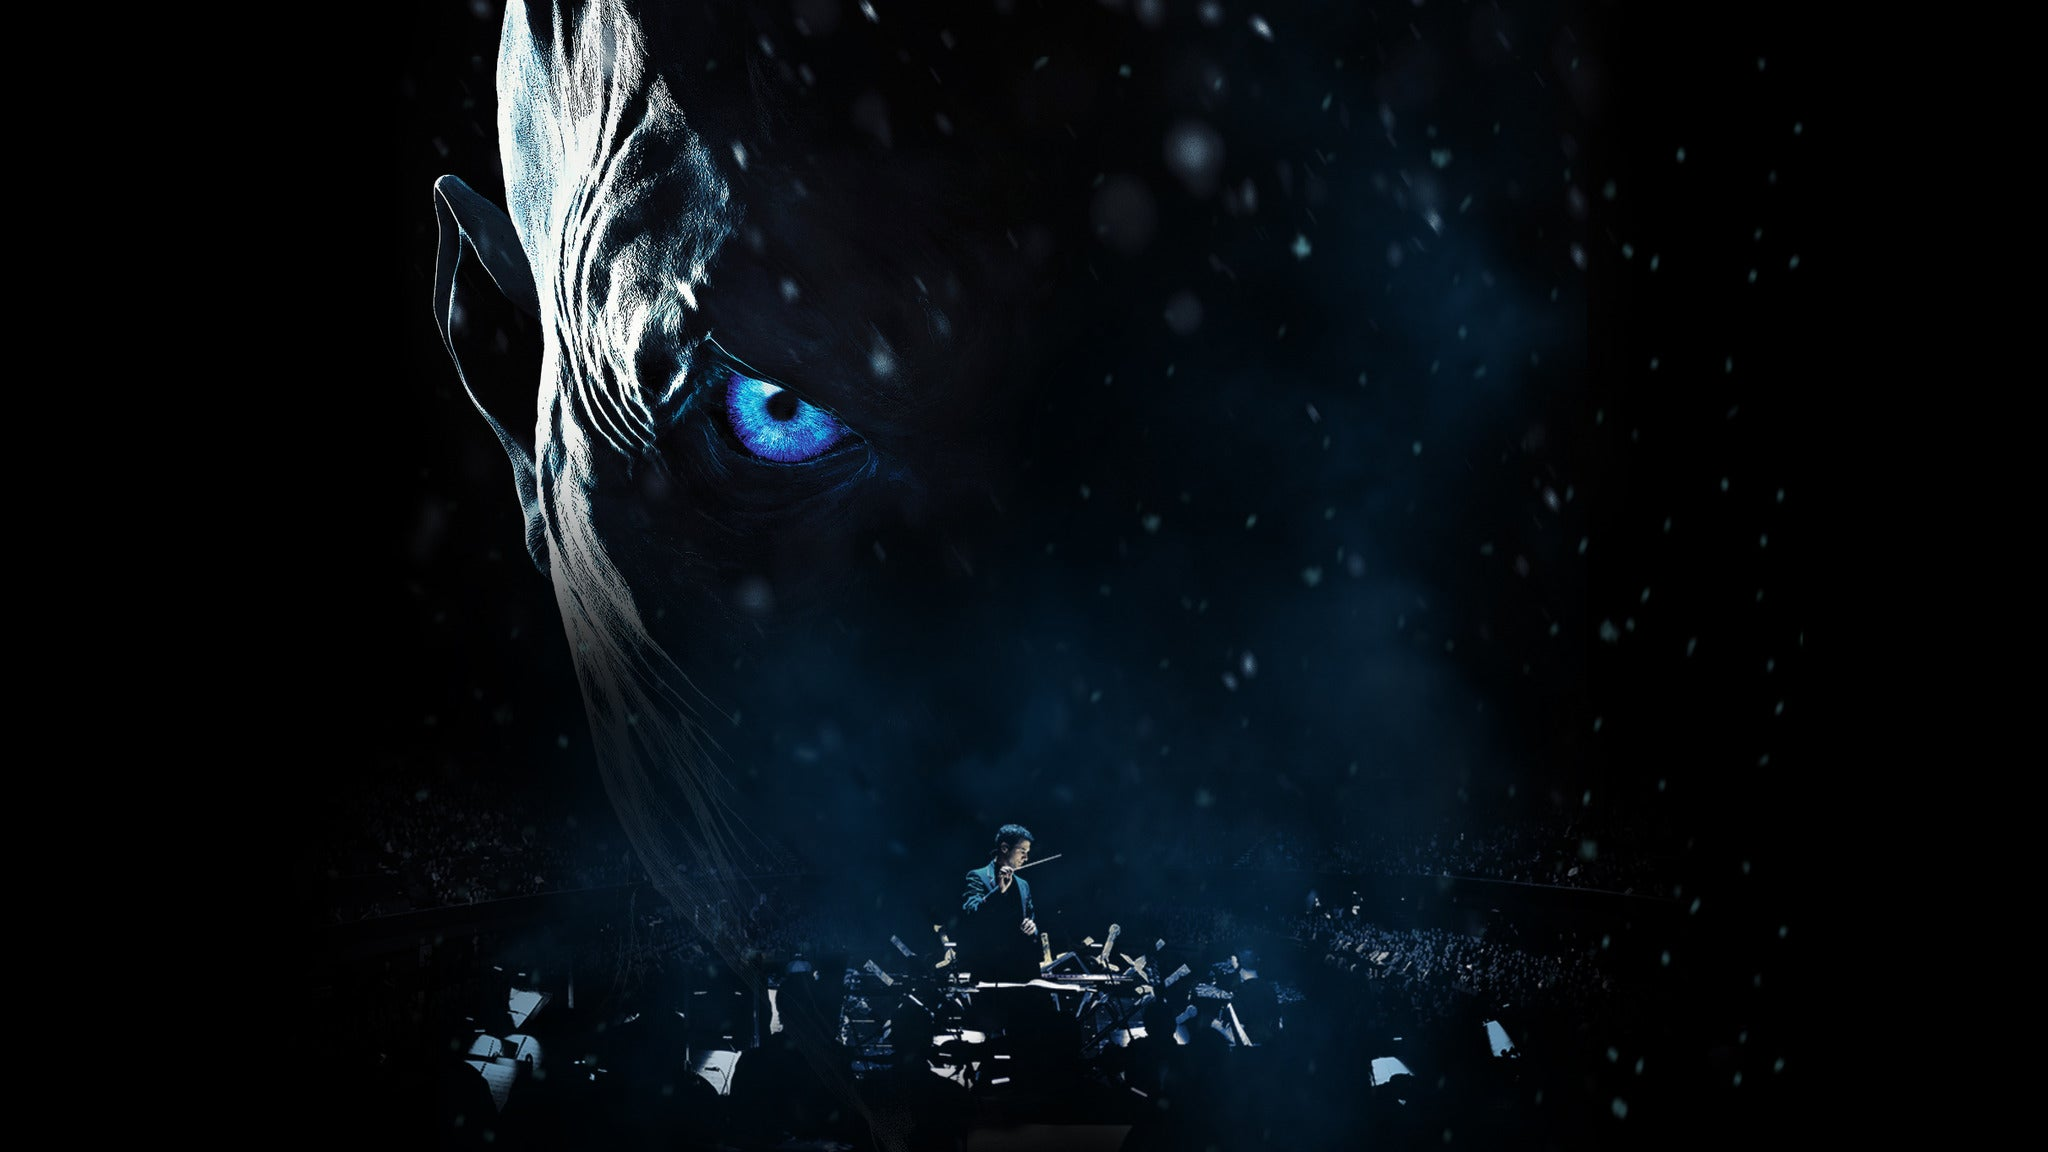 Game of Thrones Live Concert Experience at Mohegan Sun Arena